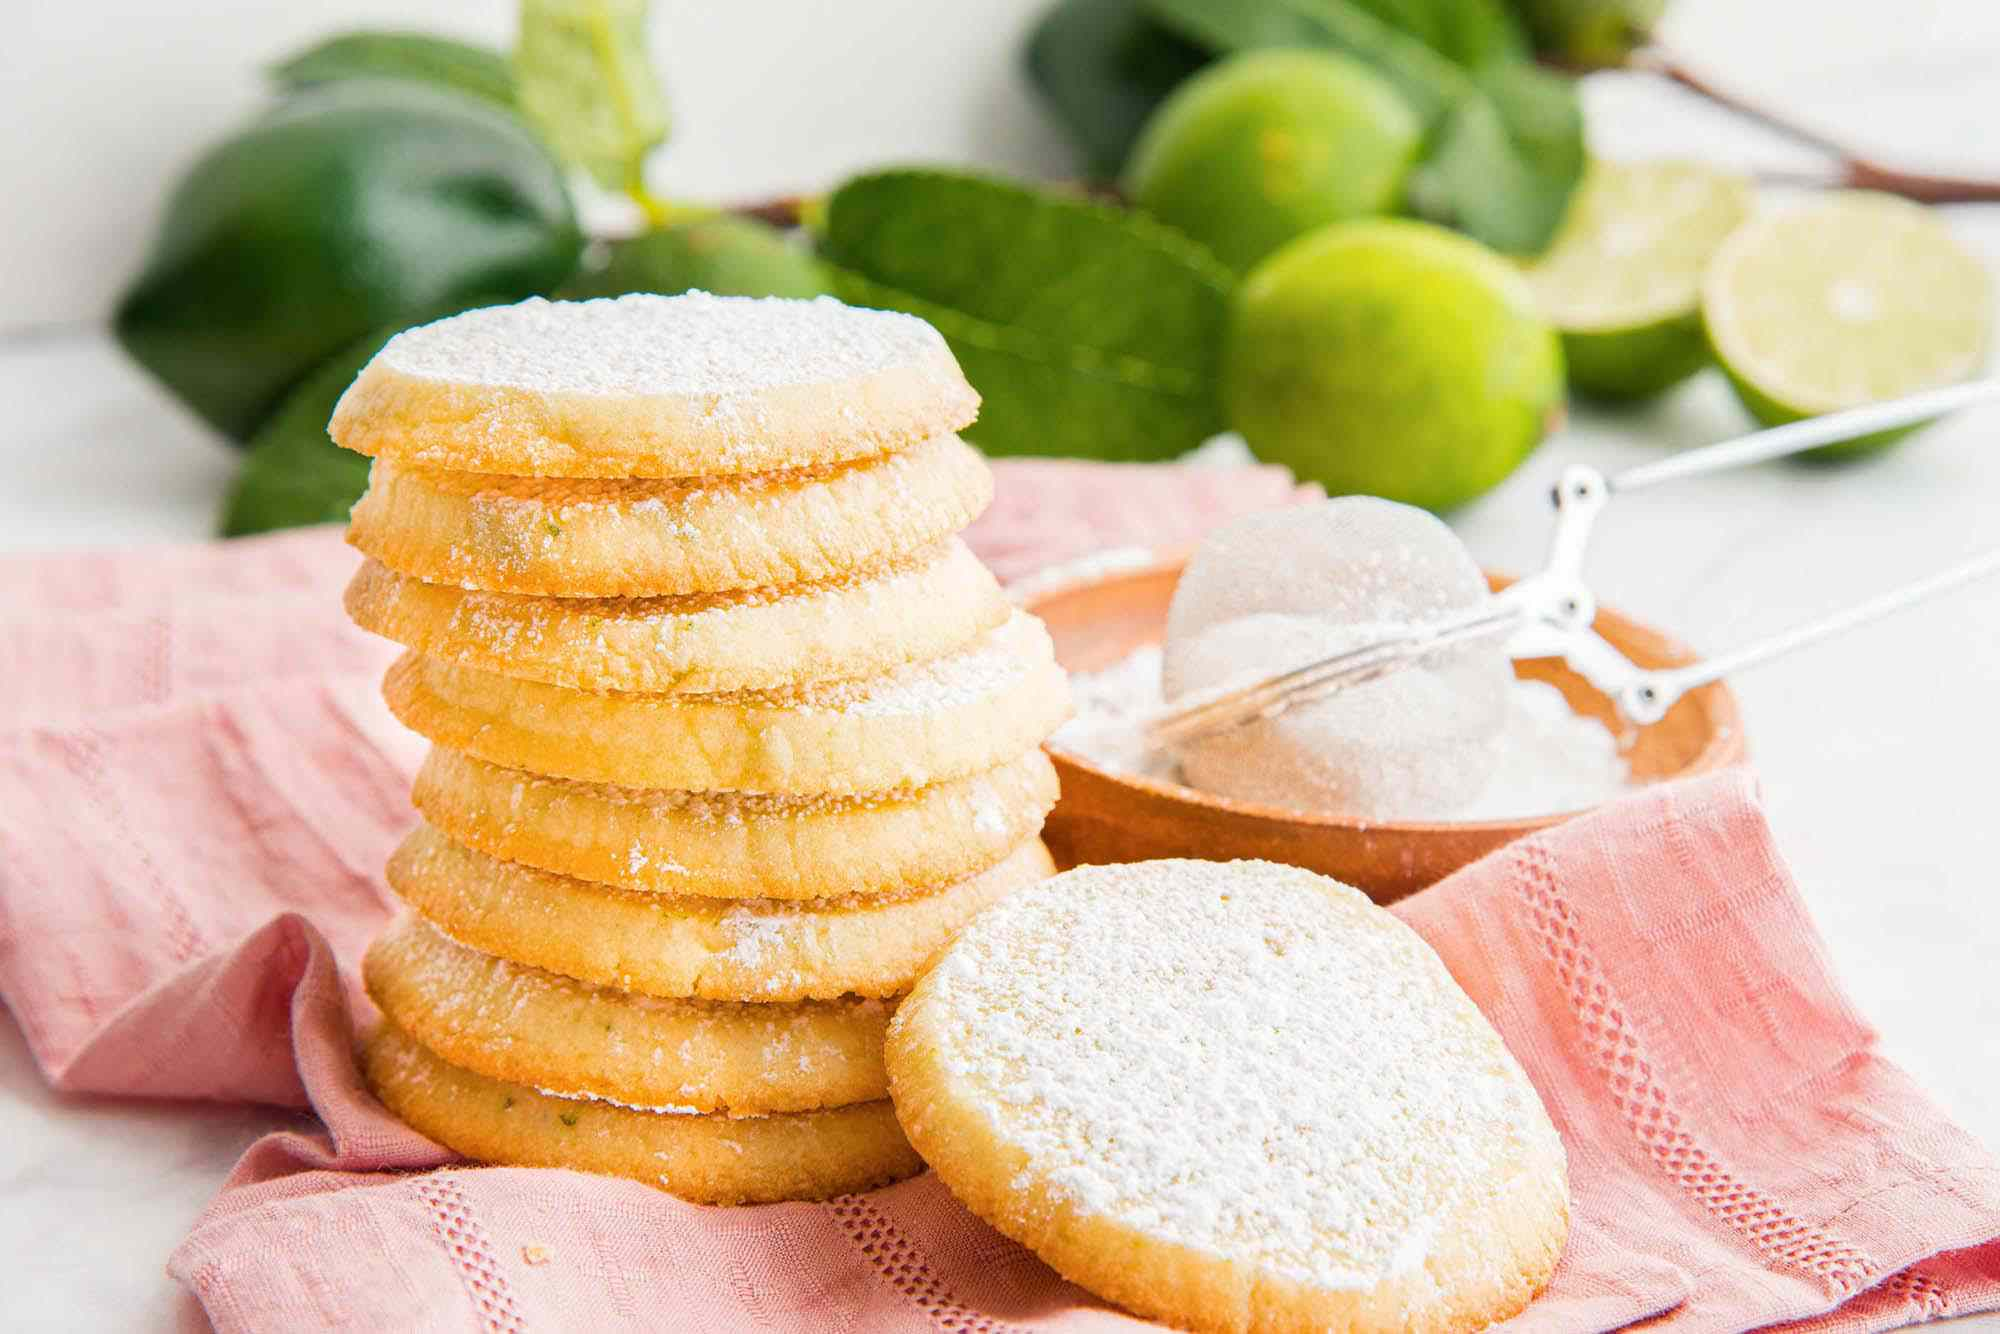 Horizontal view of stacked lime refrigerator cookies coated in powdered sugar and sitting on a pink linen. Limes on their branches are in the background.